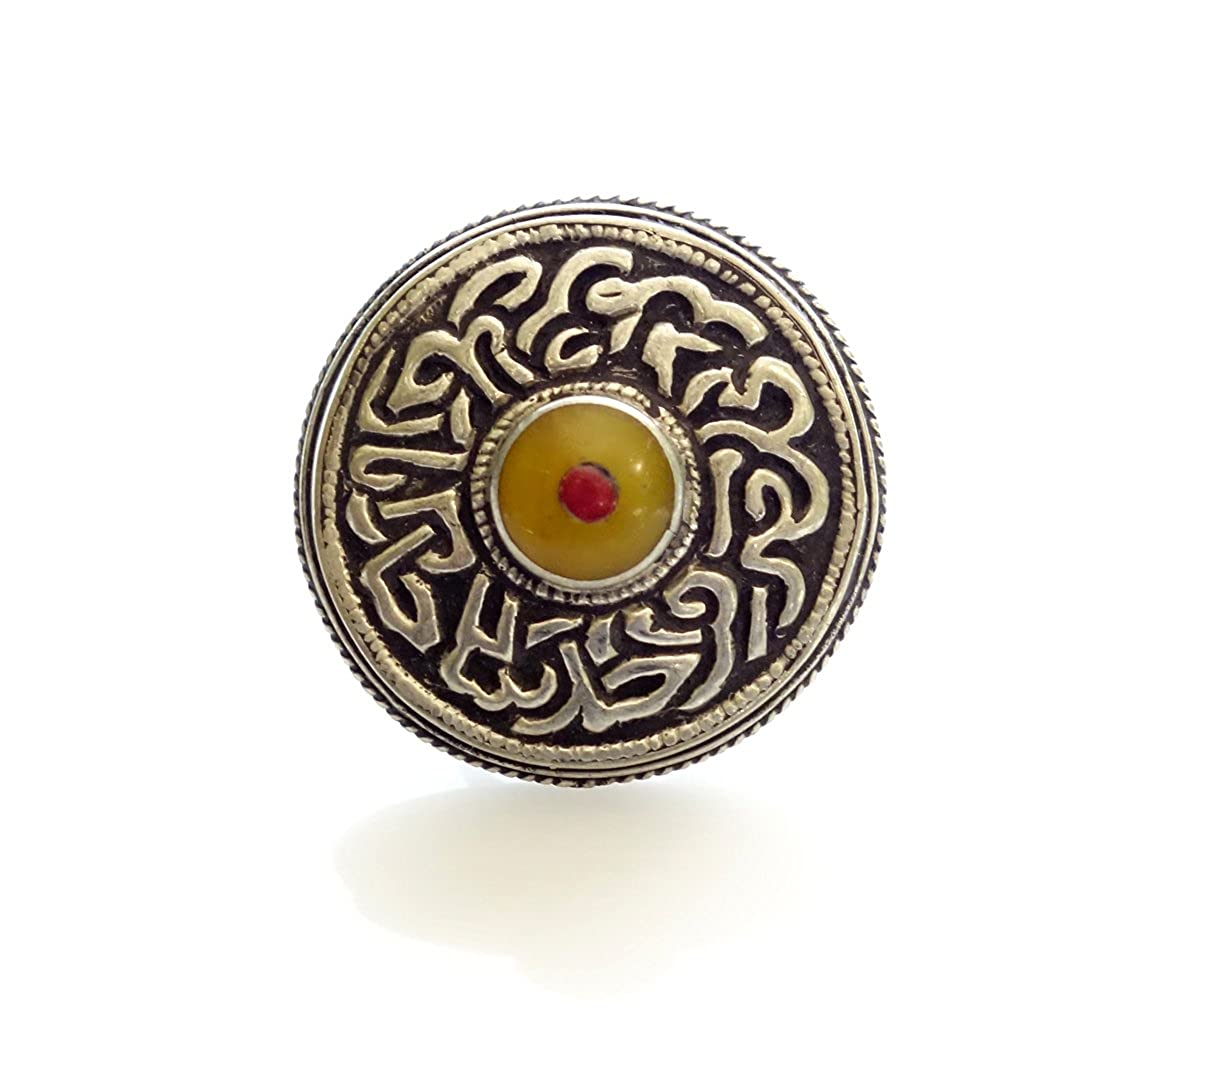 Tibetan Silver Amber Ring Coral Ring FINE Engraving Filigree in Modern Design Tribal Look Gypsy Ring Round Shape Ring for Unisex Men Women Young Girls Boys